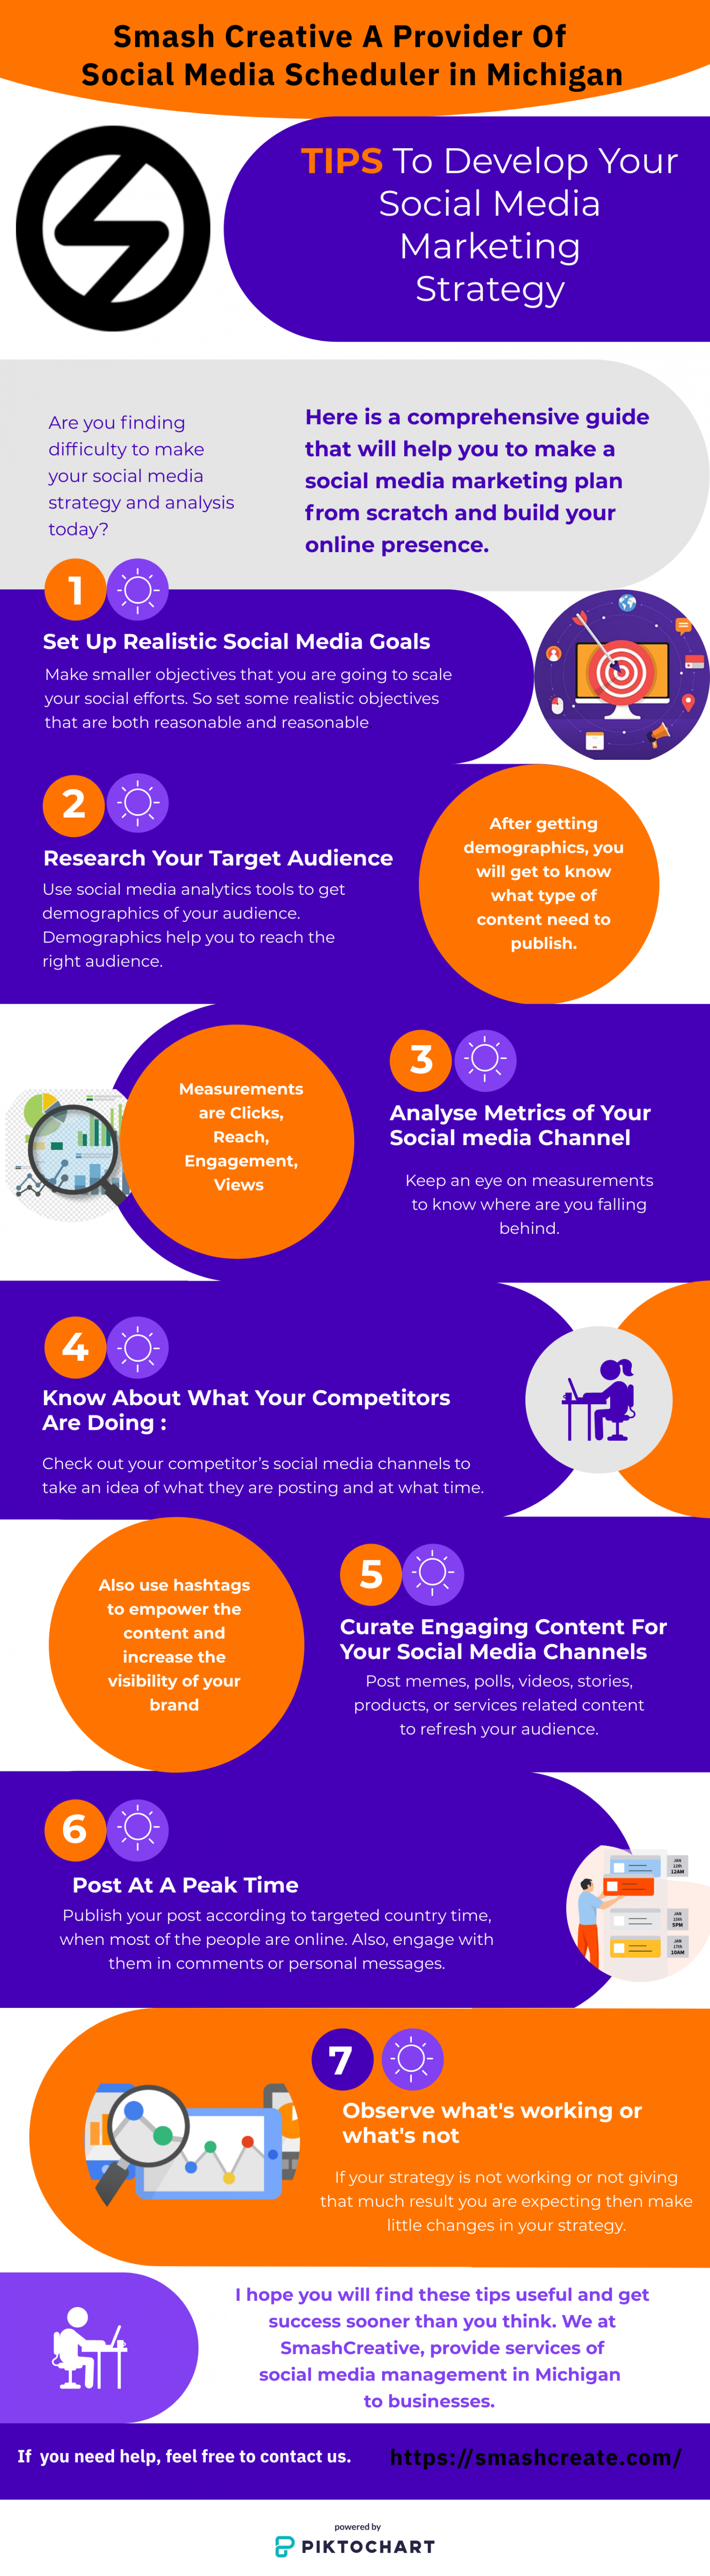 7 Steps To Develop Your Social Media Marketing Strategy Infographic